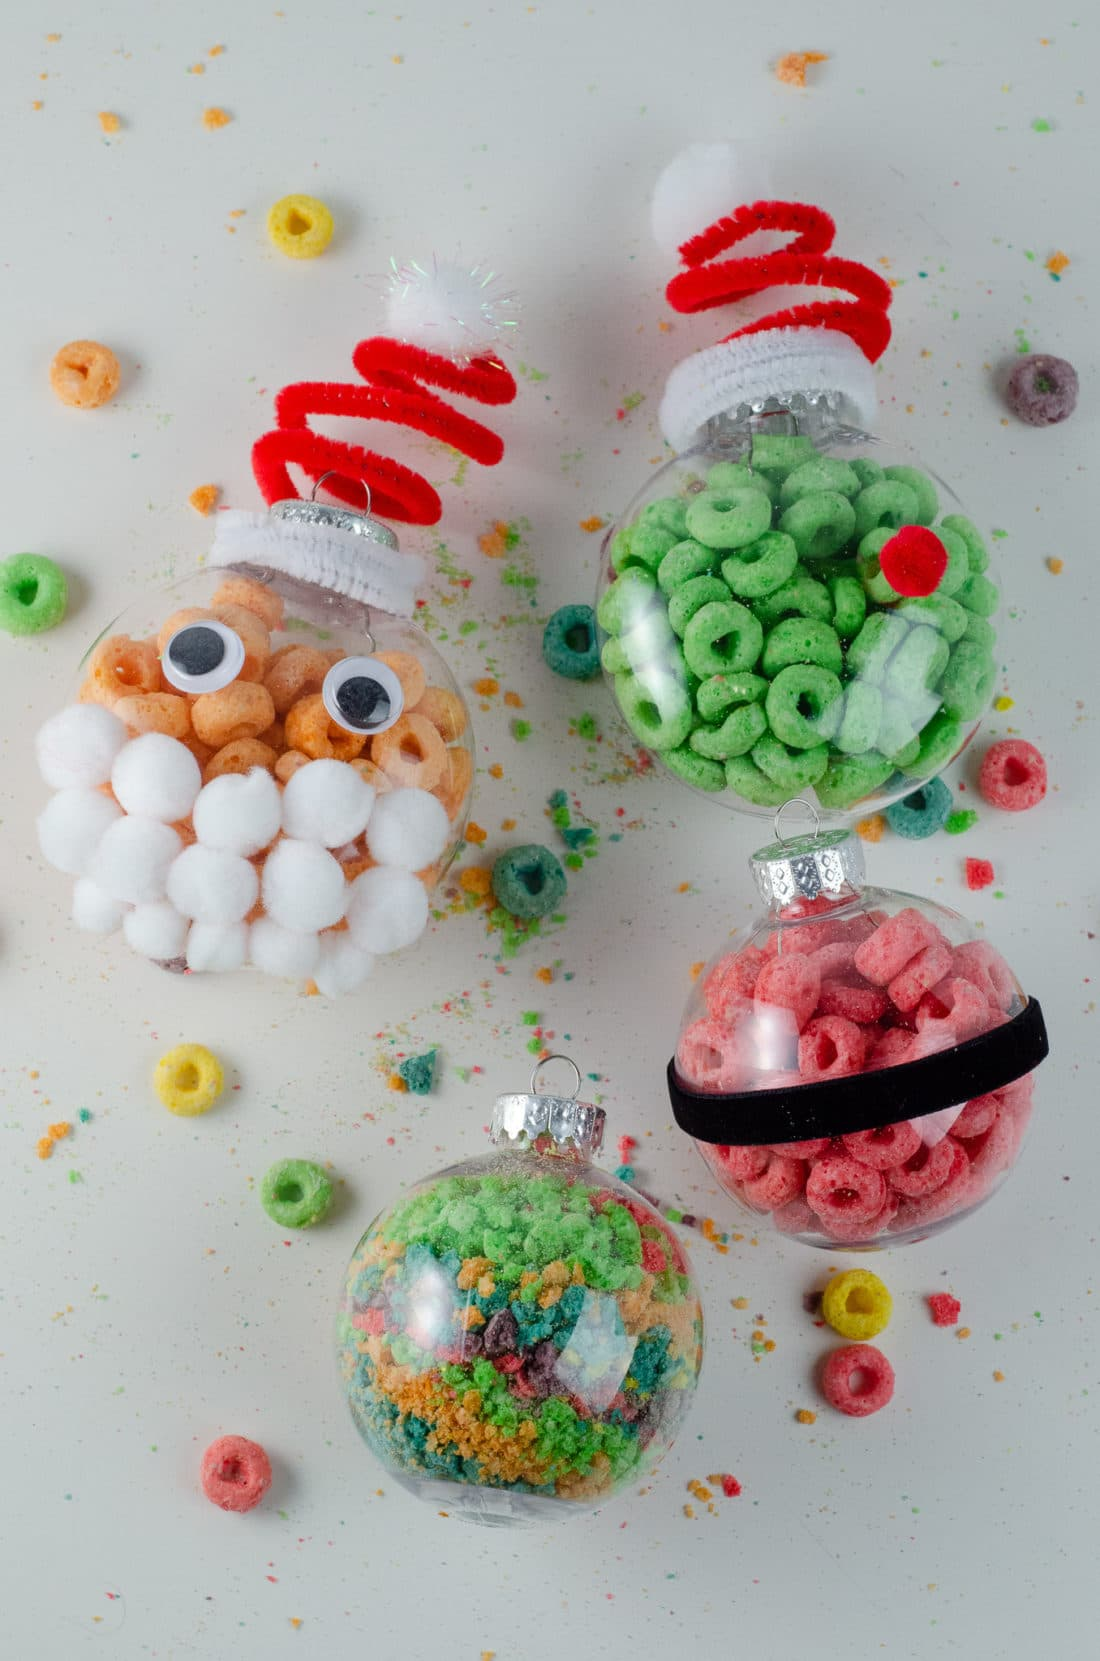 Christmas Ornament Ideas for Kids Using Cereal Together. It's time to let the kids be the boss for this new kid-friendlyChristmas DIY. Rethink Cereal with somr my Christmas Ornament Ideas for Kids Using Cereal.